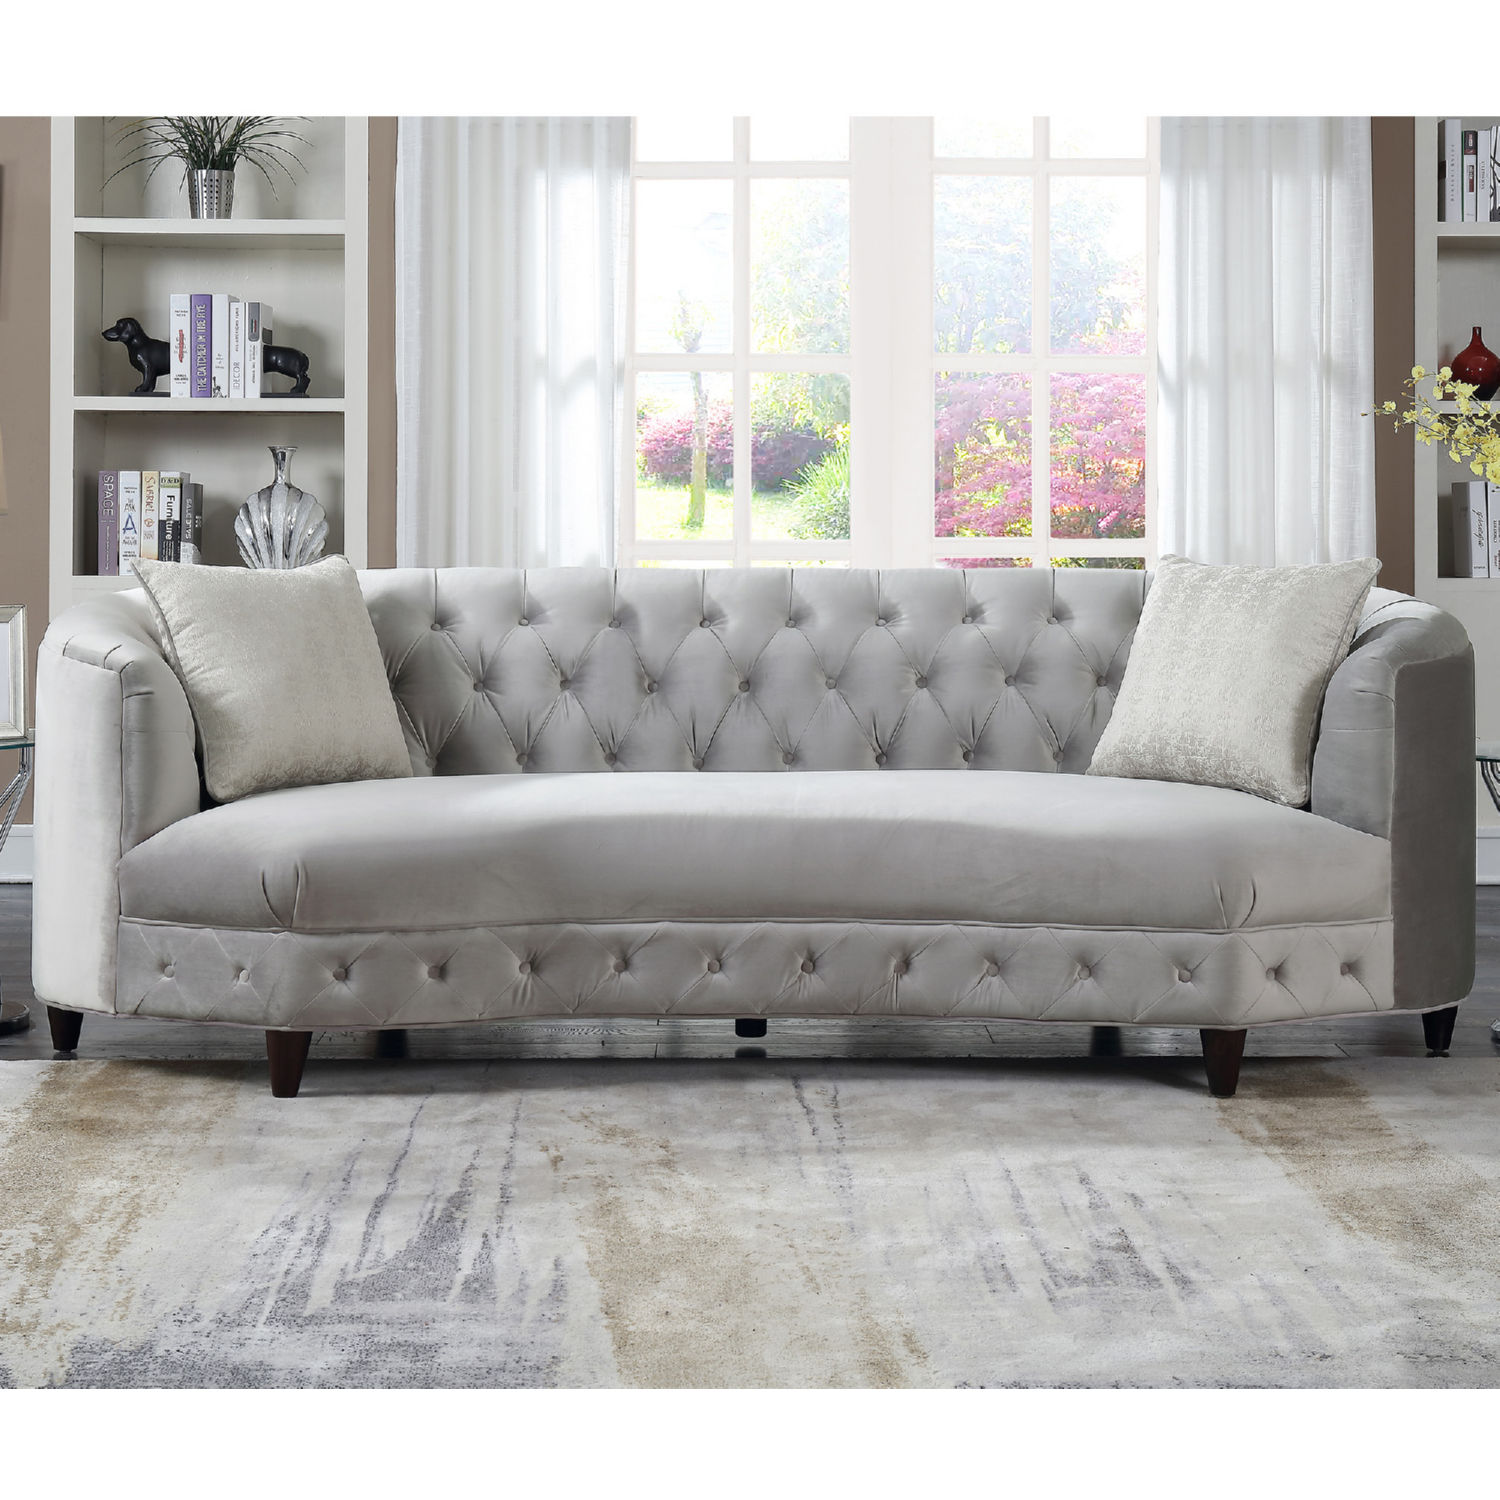 Chic Home FSA2804 DR Leeba Kidney Shaped Sofa in Tufted Grey